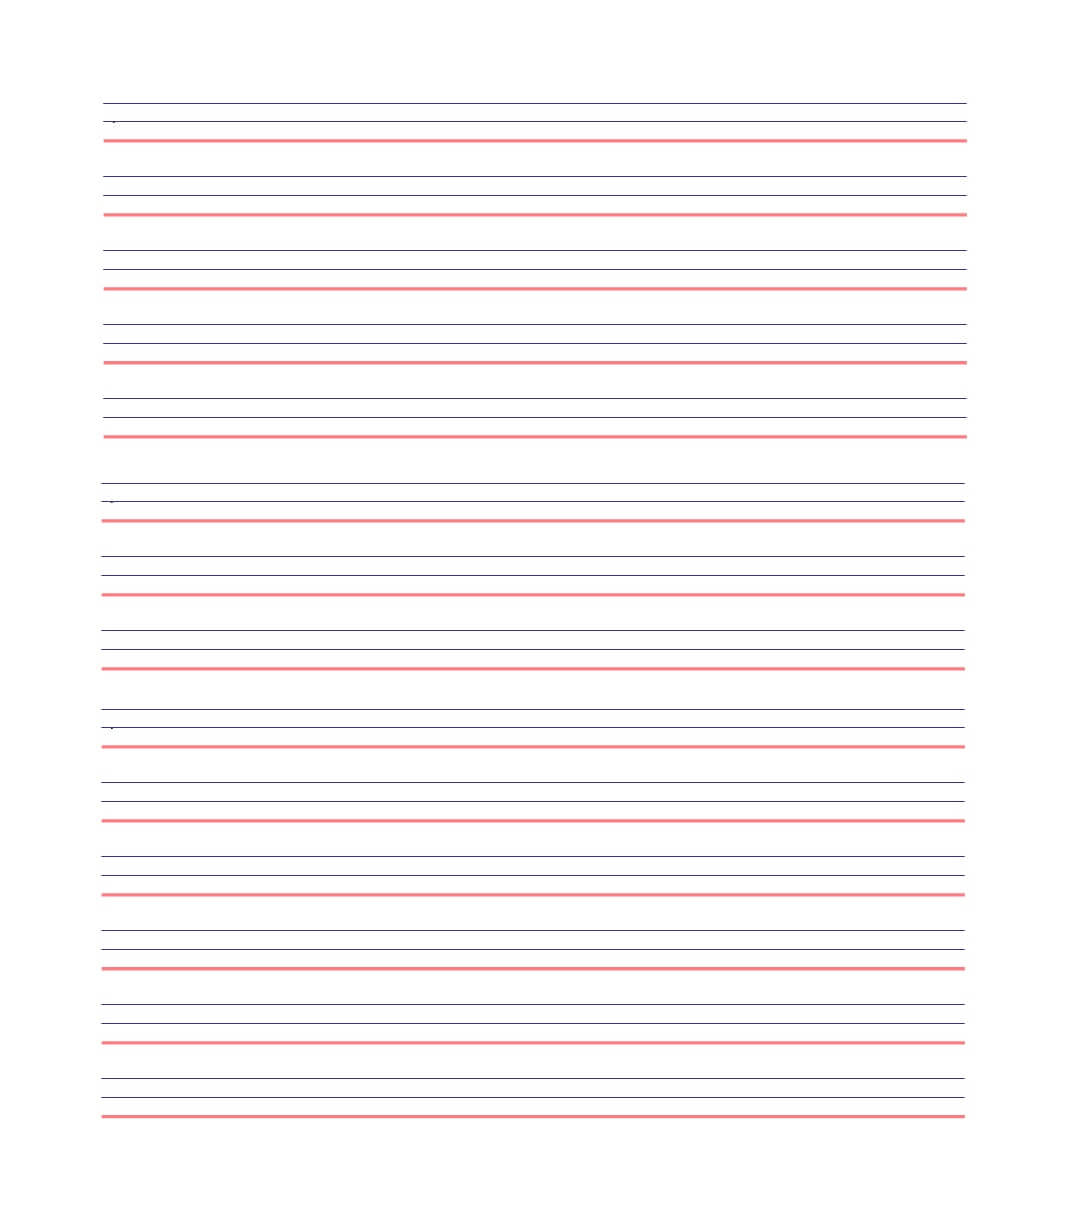 32 Printable Lined Paper Templates ᐅ Template Lab In Microsoft Word Lined Paper Template